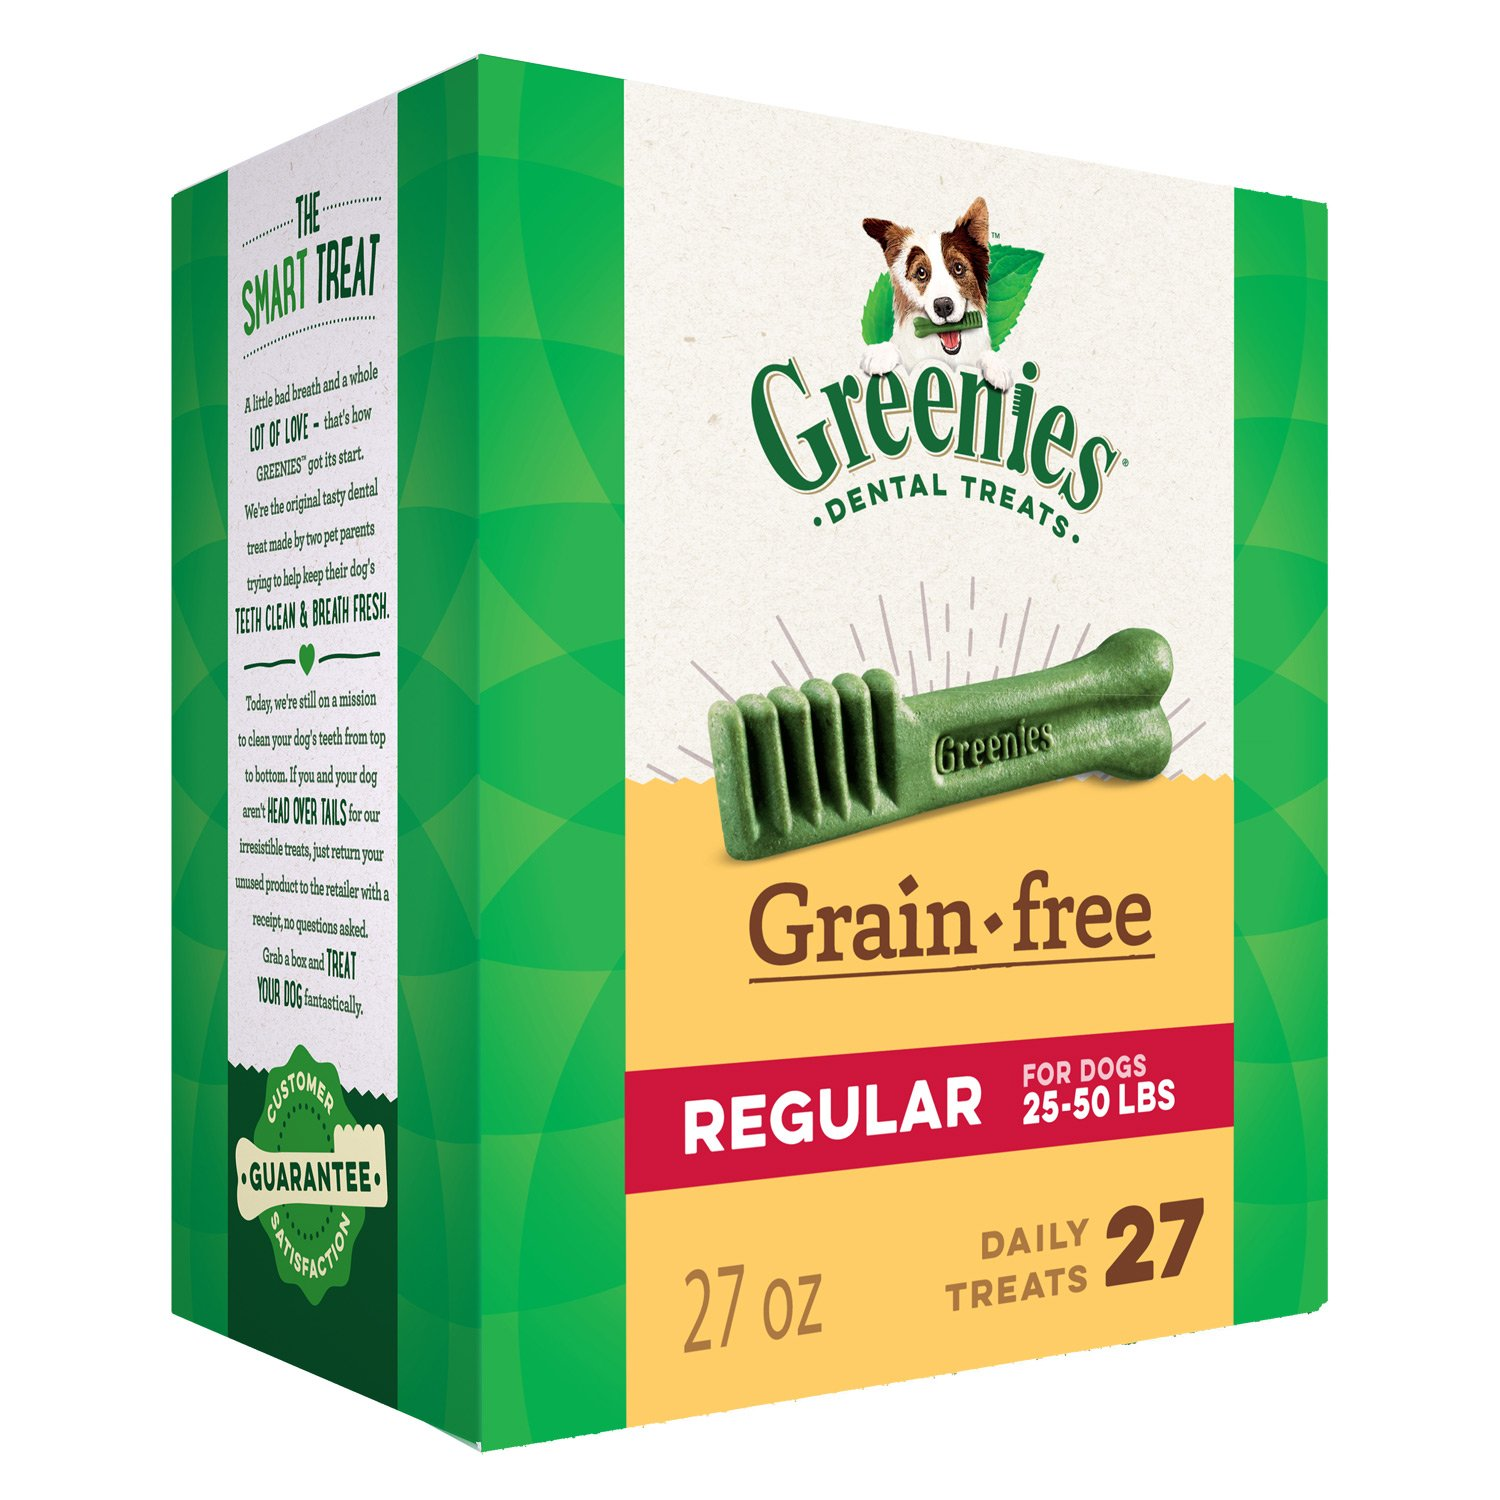 Greenies Grain Free Regular Size Dental Dog Treats, 27 oz. Pack (27 Treats) by Greenies